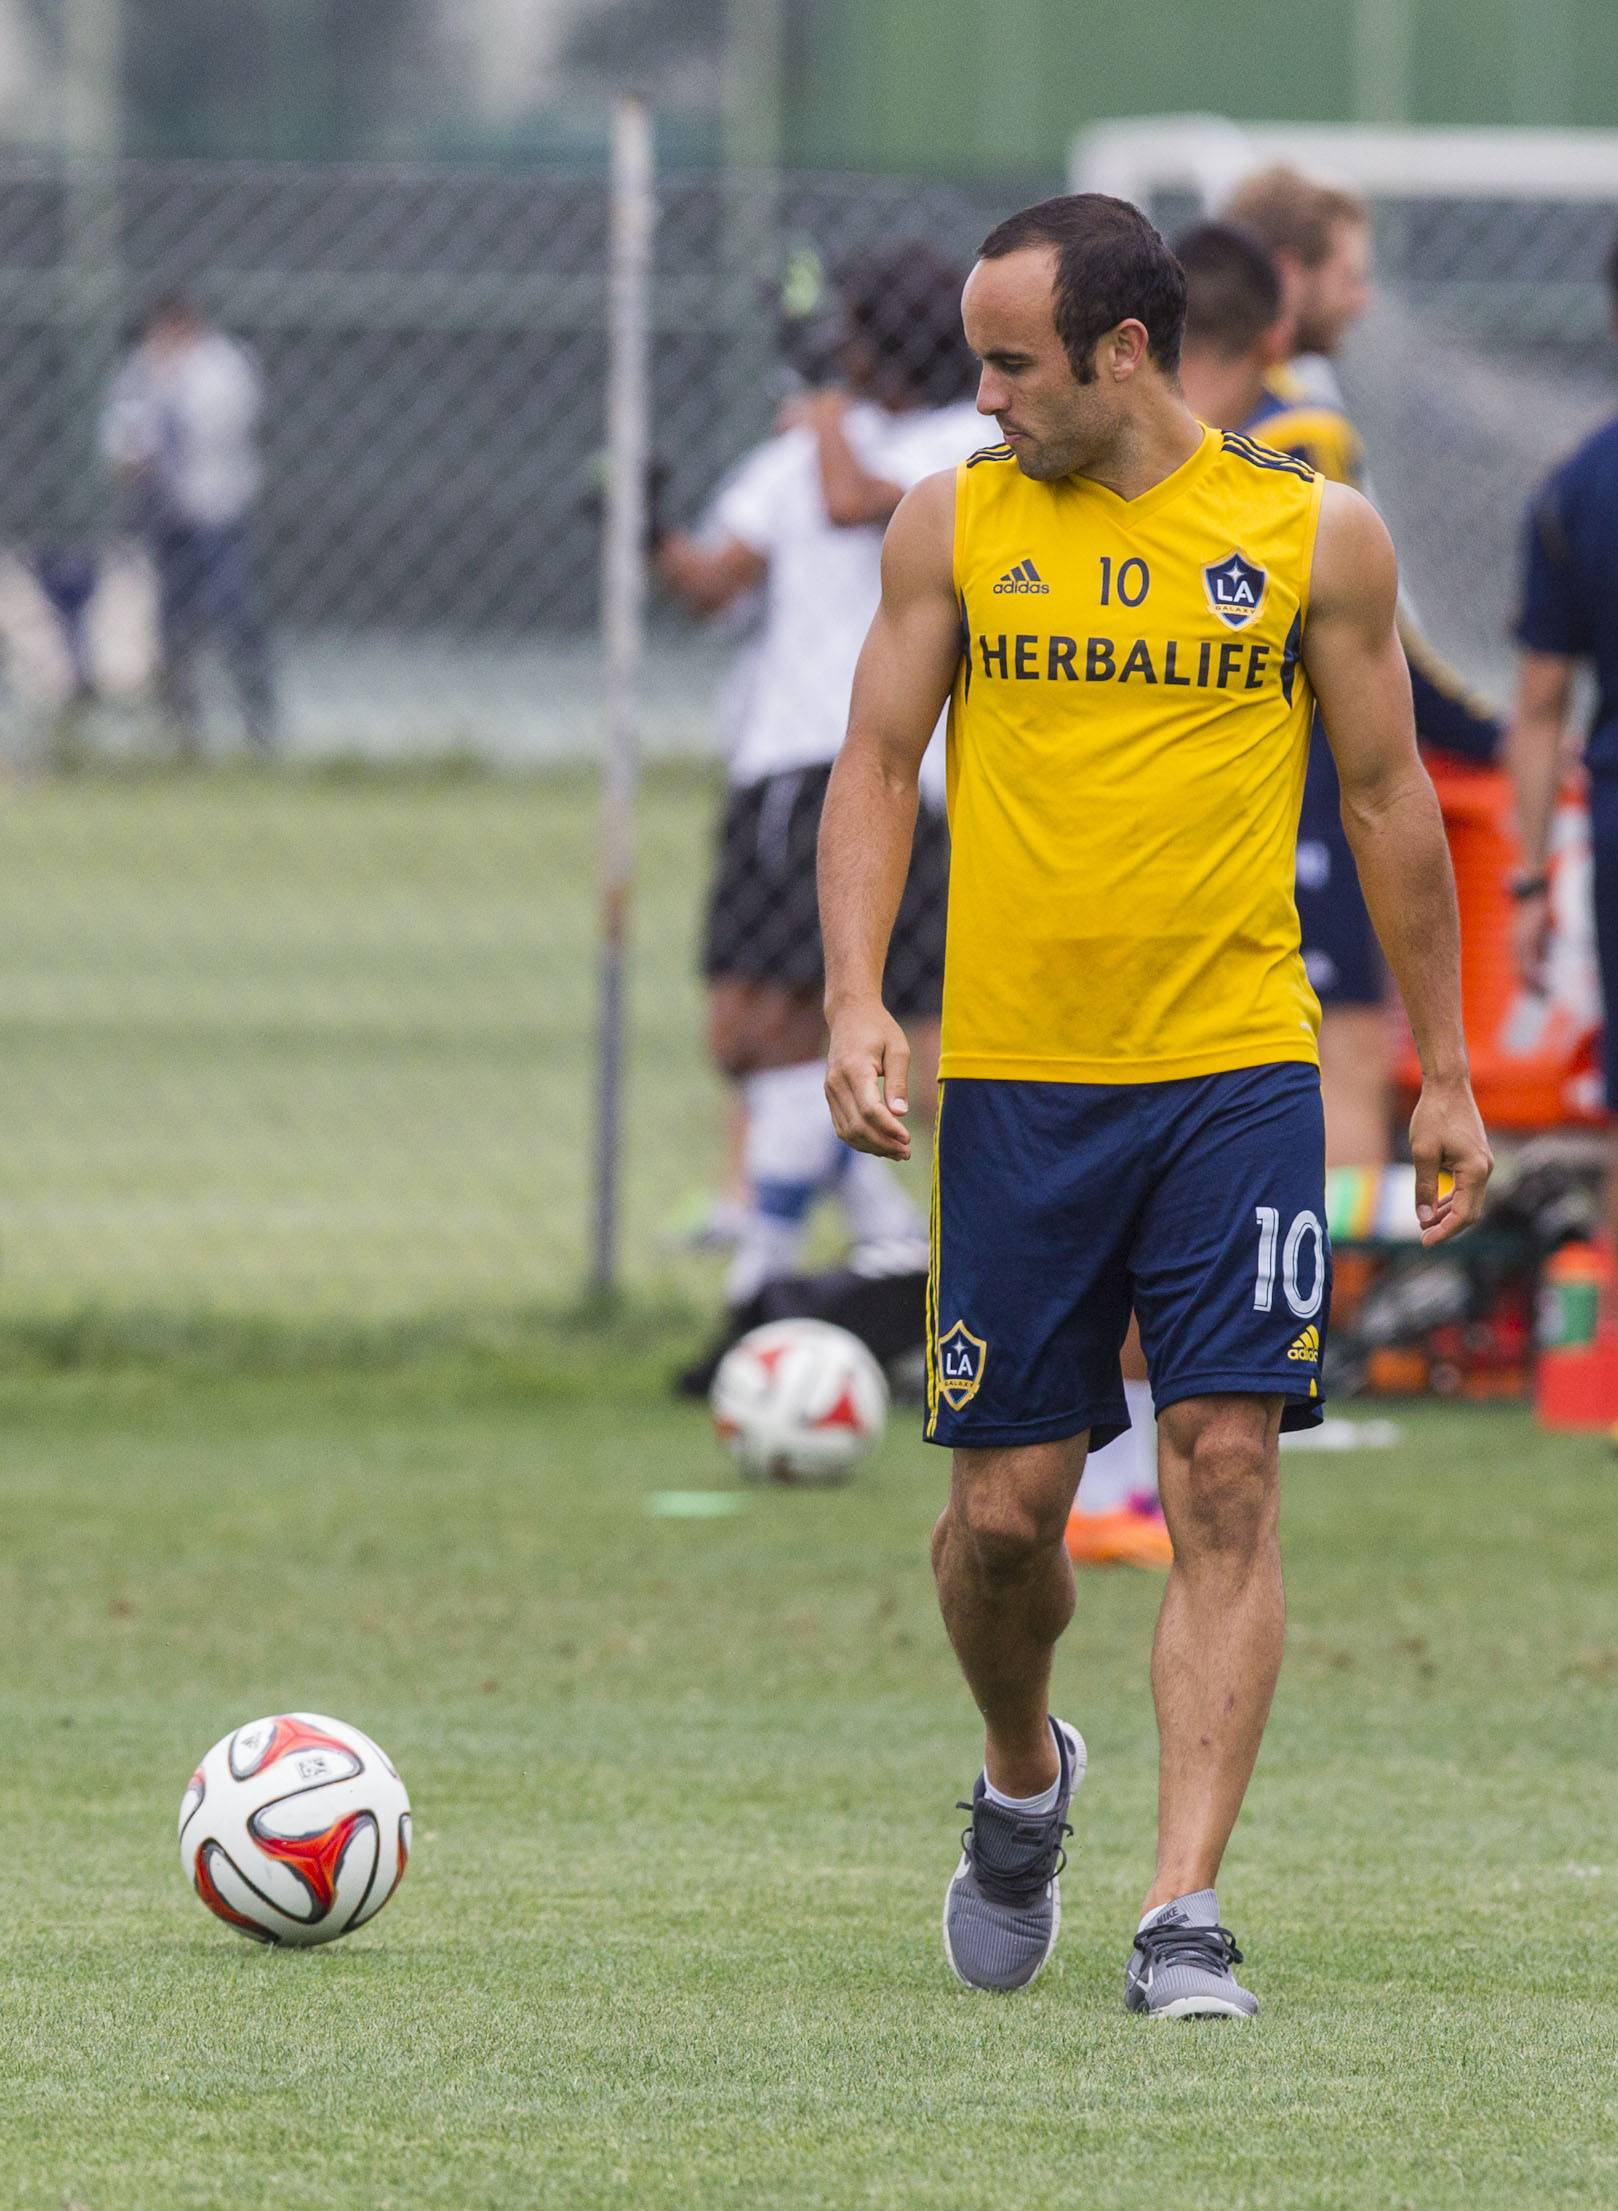 Now back with the Los Angeles Galaxy, forward Landon Donovan is preparing to face the Chicago Fire on Sunday, just 10 days after being told he won't be going to his fourth World Cup. The 32-year-old attacker had 2 goals and 1 assist in his last MLS contest.